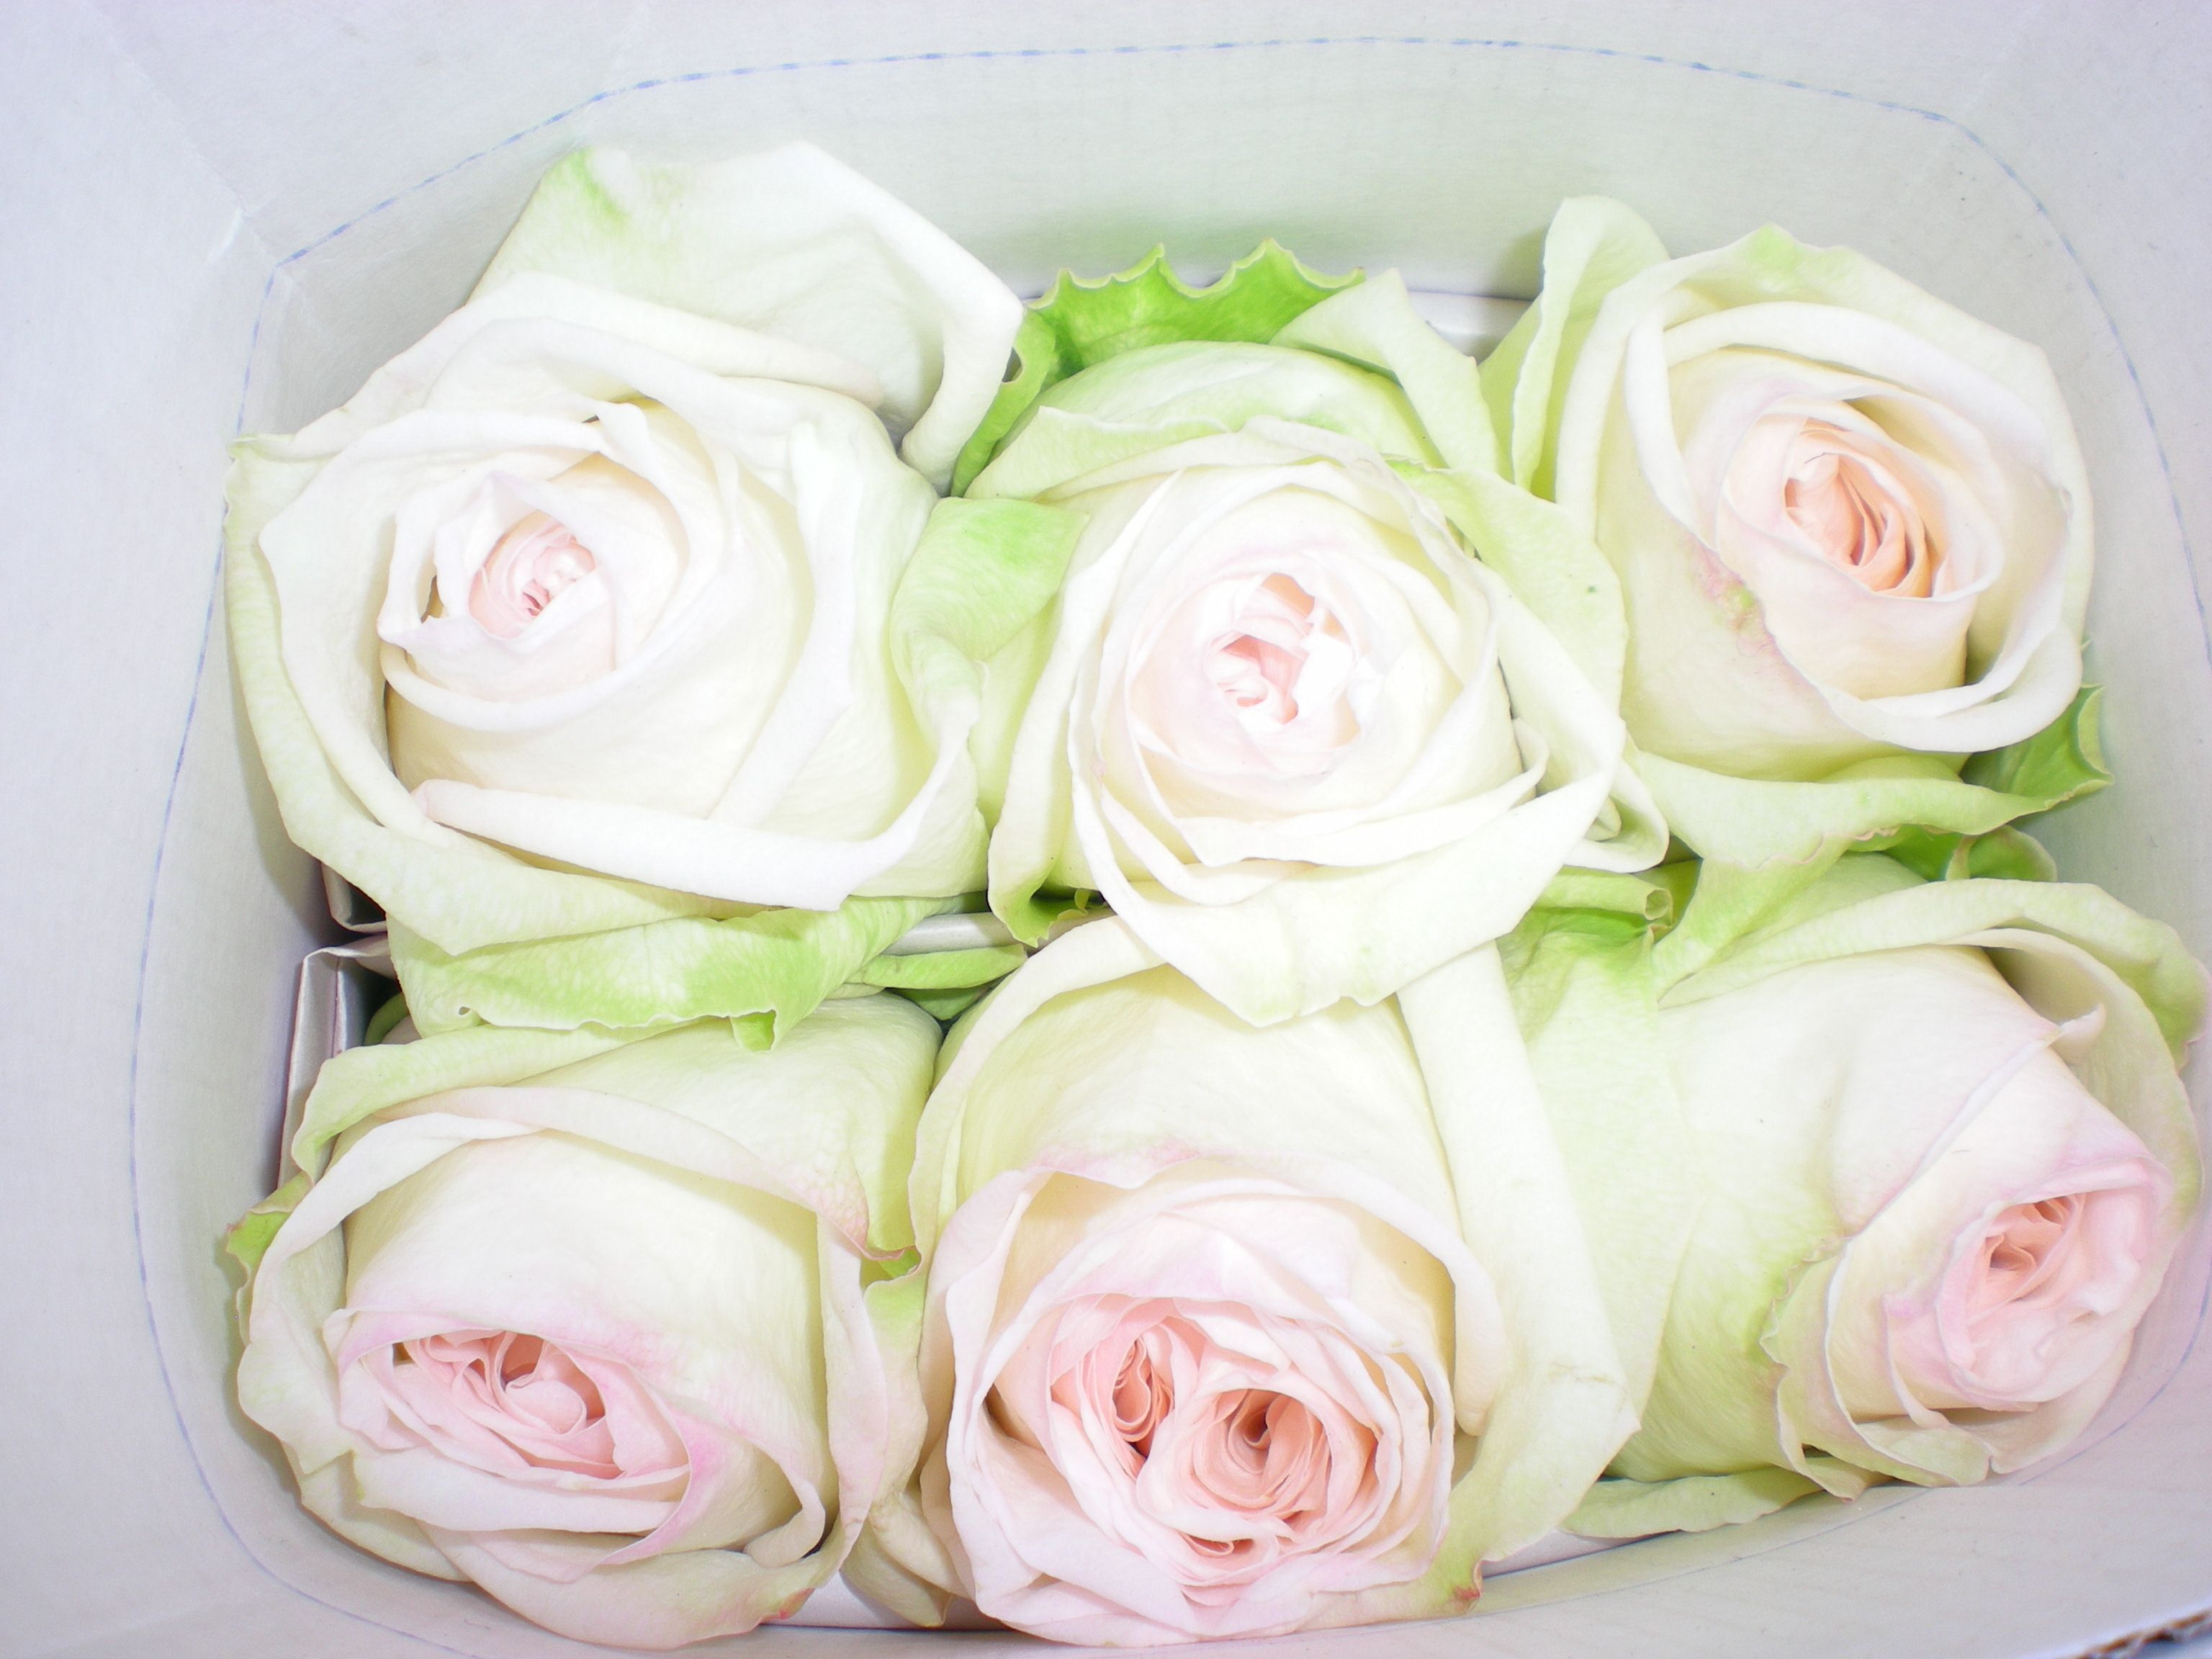 White Ou0027Hara Garden Rose U003cu003c How They Look When They Arrive At The